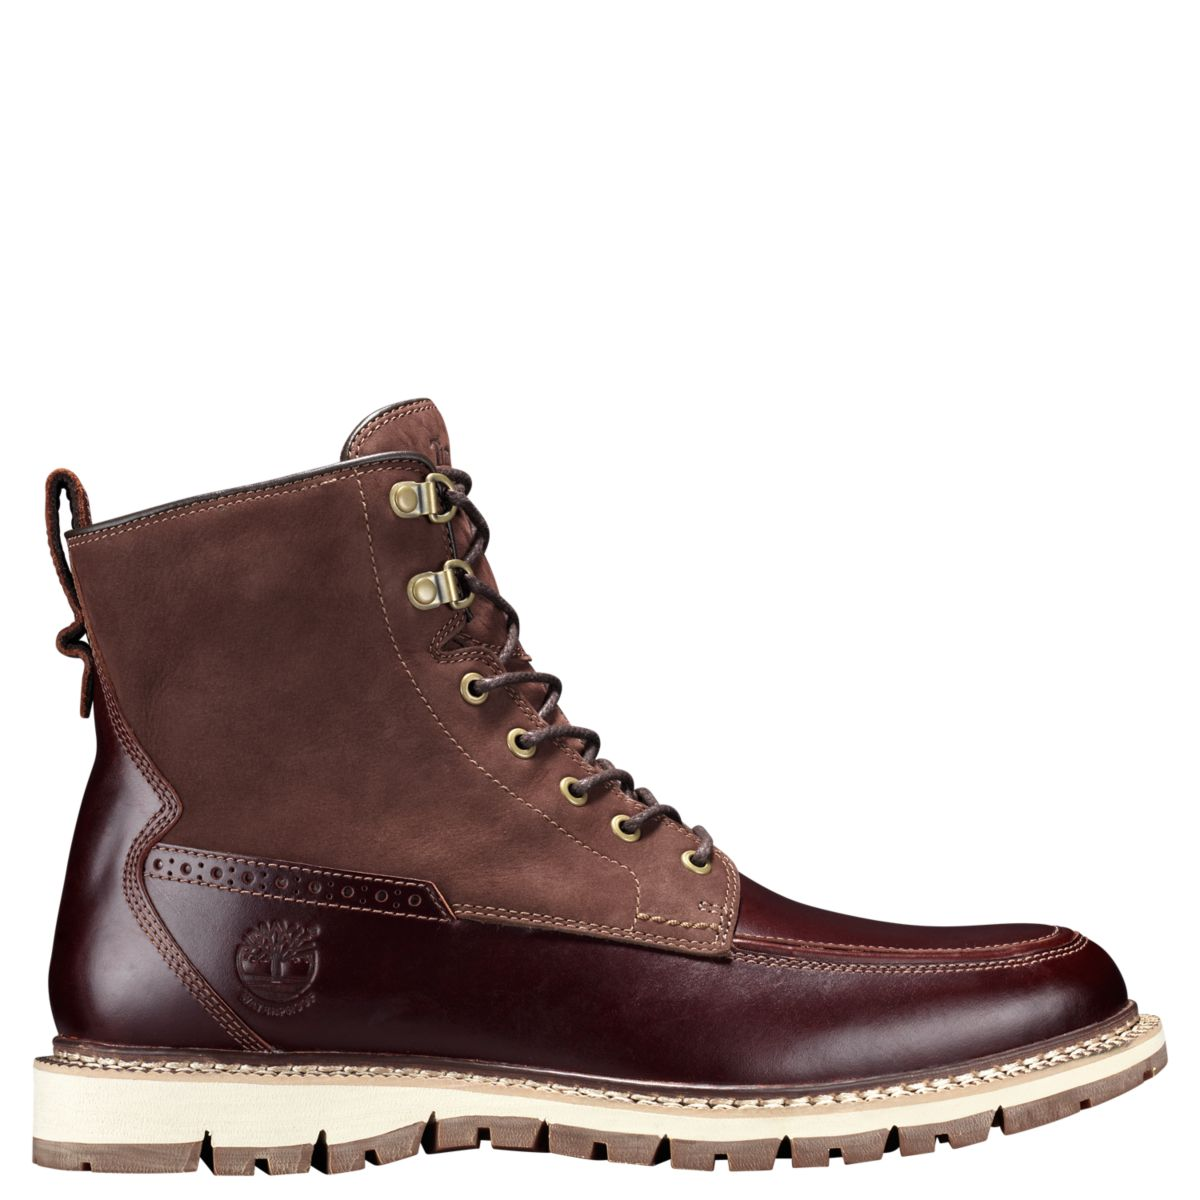 Timberland Britton Hill Moc Toe Waterproof Boots